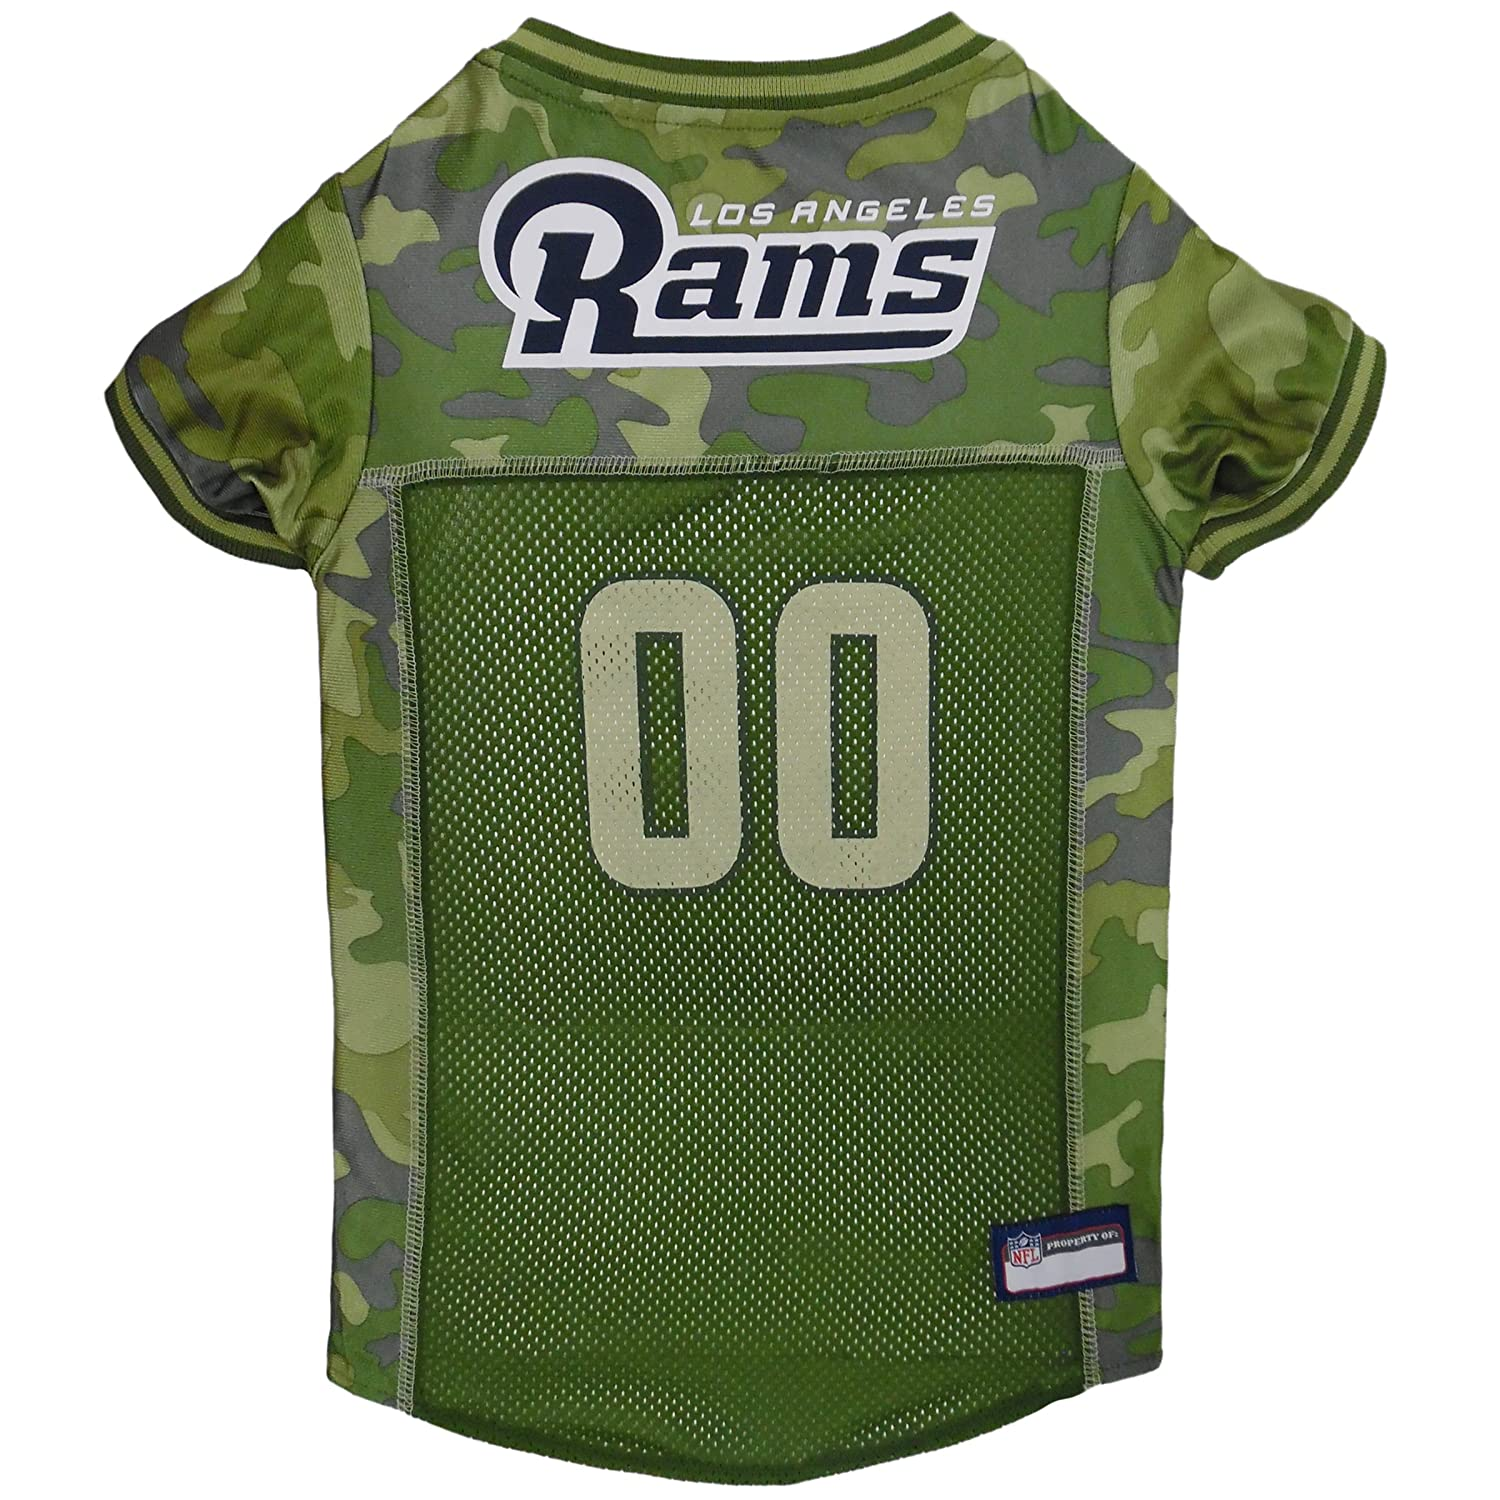 Large Pets First NFL Los Angeles RAMS Camouflage Dog Jersey, Large. CAMO PET Jersey Available in 5 Sizes & 32 NFL Teams. Hunting Dog Shirt